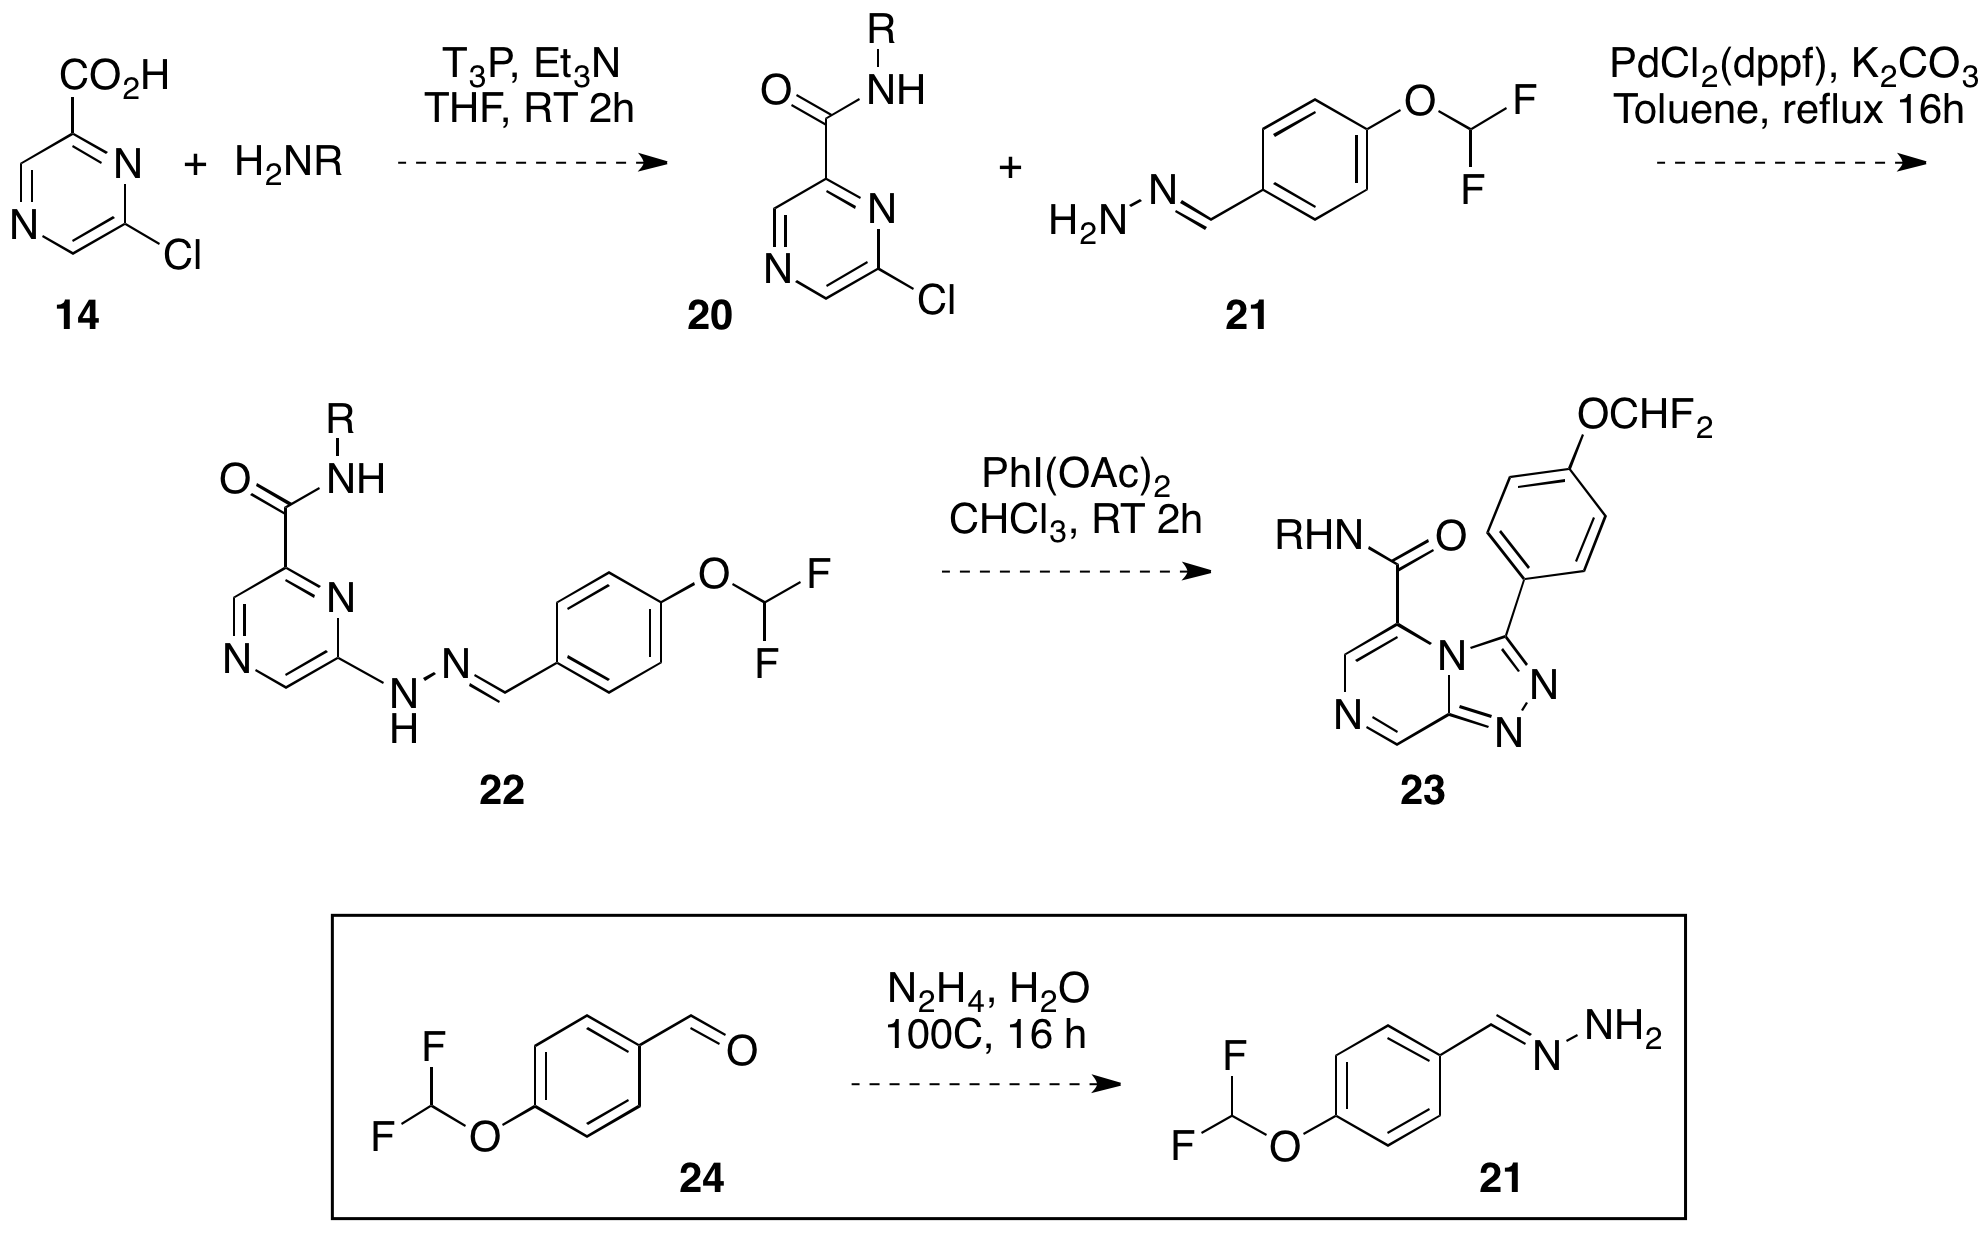 amide synthesis_jg_osm_blog